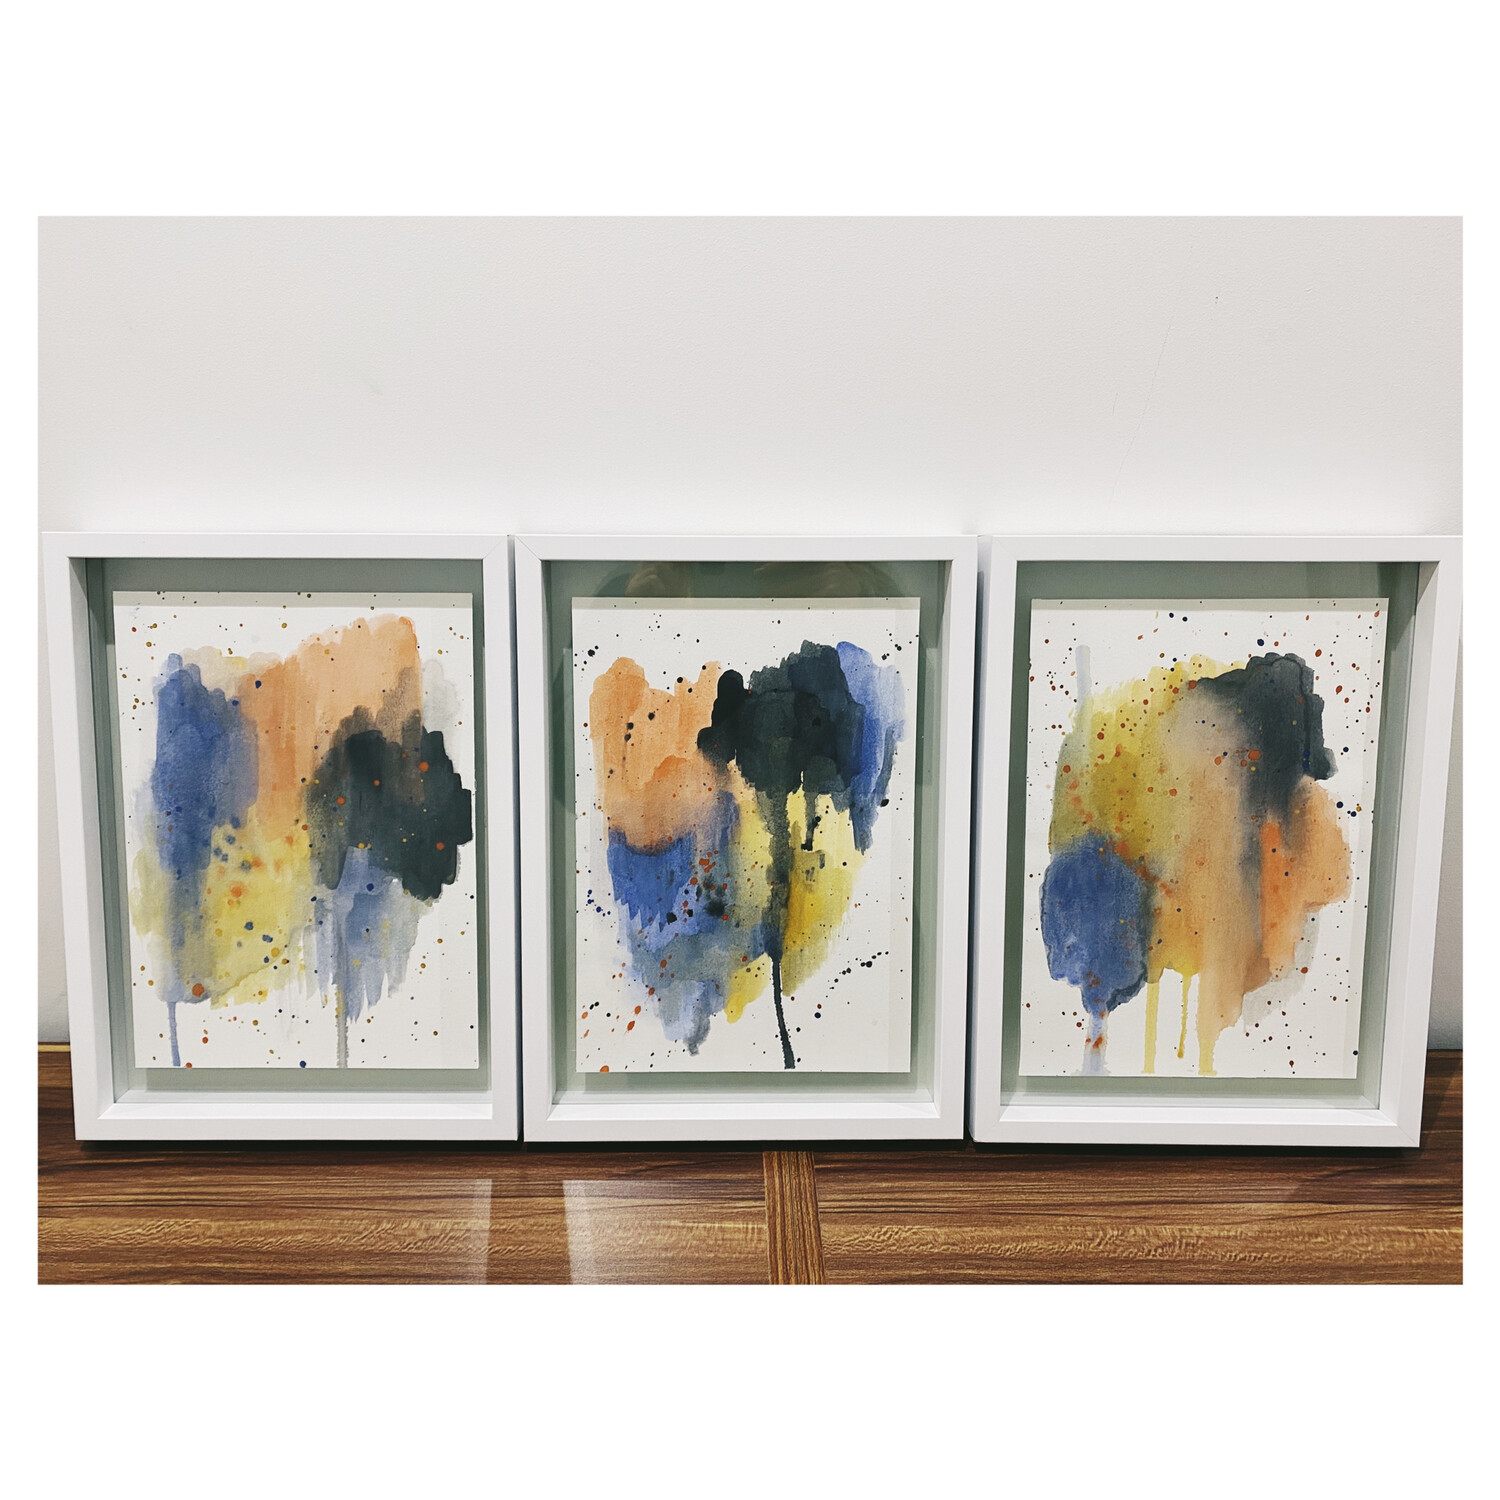 Earth Mixtures - Watercolor On Paper (Framed)